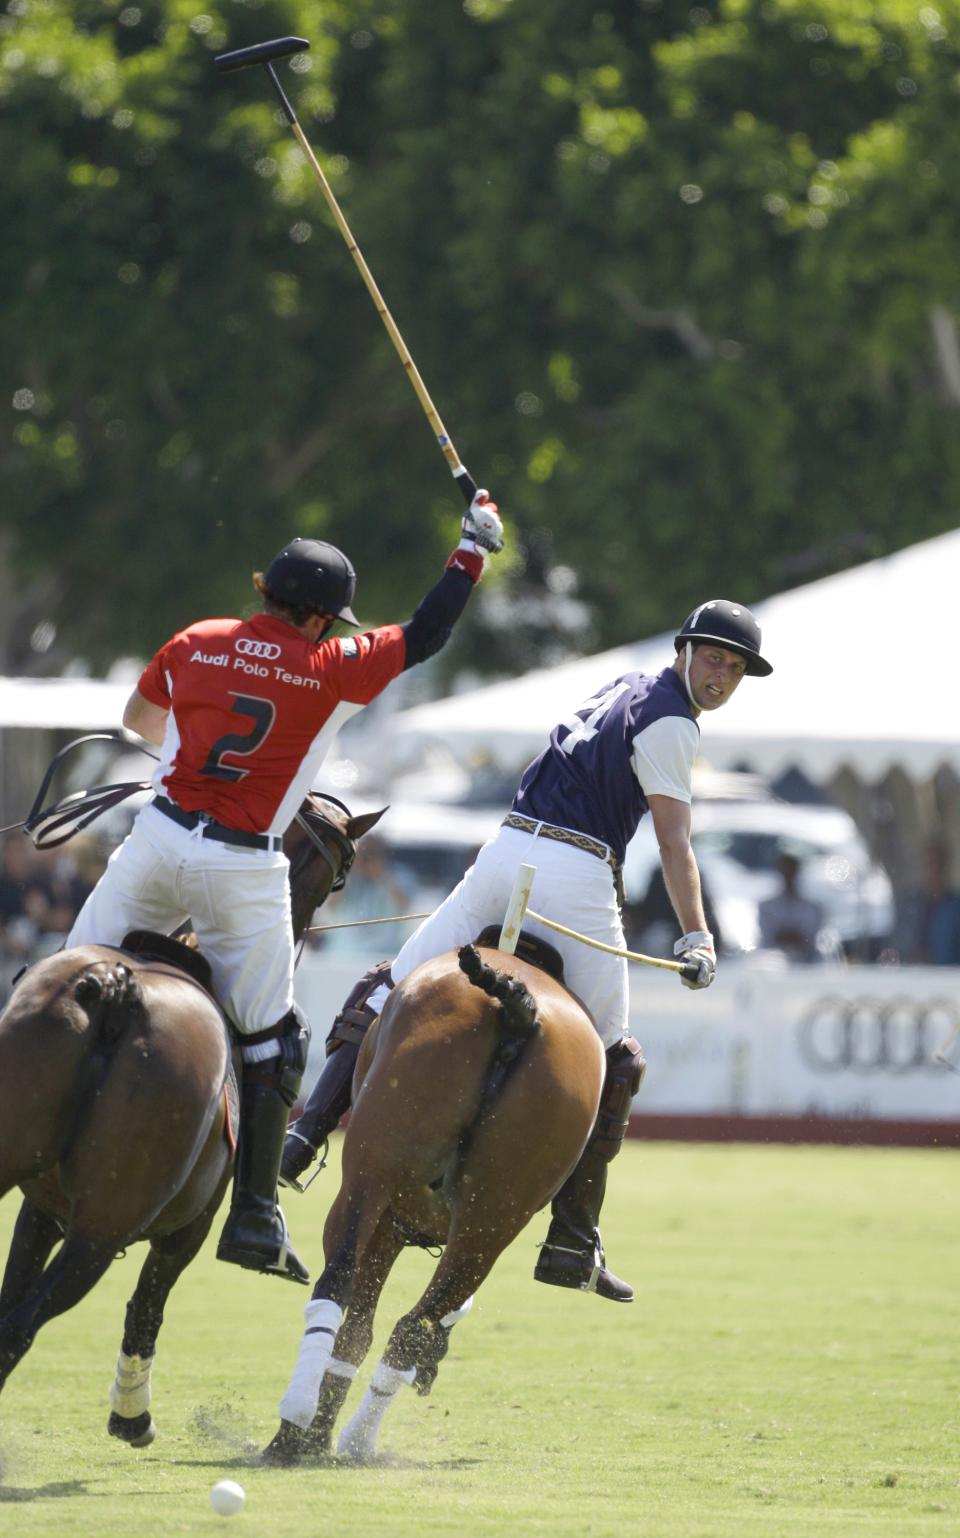 Prince William, Duke of Cambridge, right, competes in a charity polo match at The Santa Barbara Polo & Racquet club on Saturday, July 9, 2011 in Carpinteria Calif.  The event is held in support of The American Friends of The Foundation of Prince William and Prince Harry. (AP Photo/Reed Saxon)